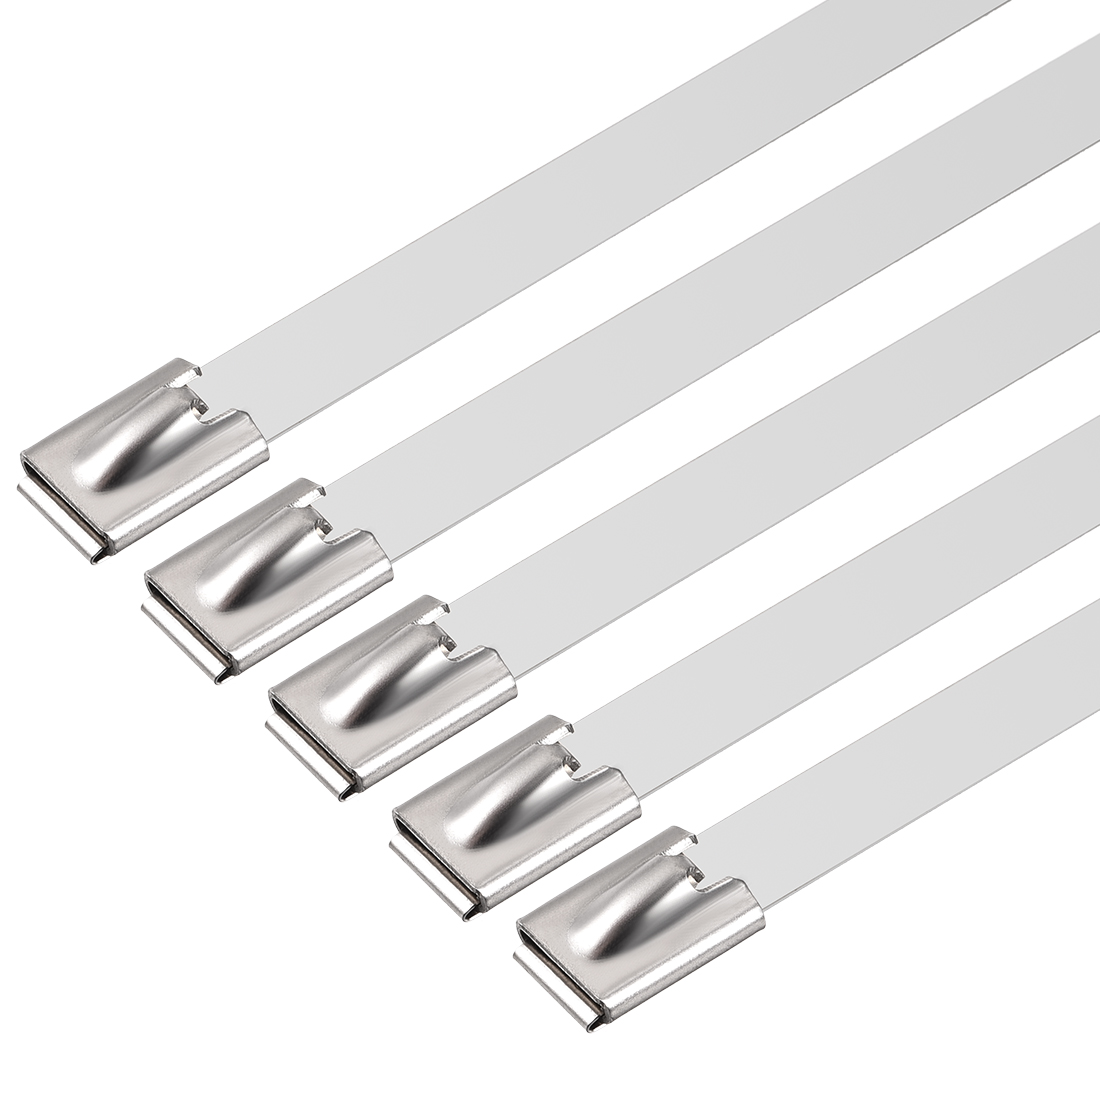 12 Inch Stainless Steel Cable Zip Ties 0.4 Inch Width Metal Exhaust Wrap 20pcs